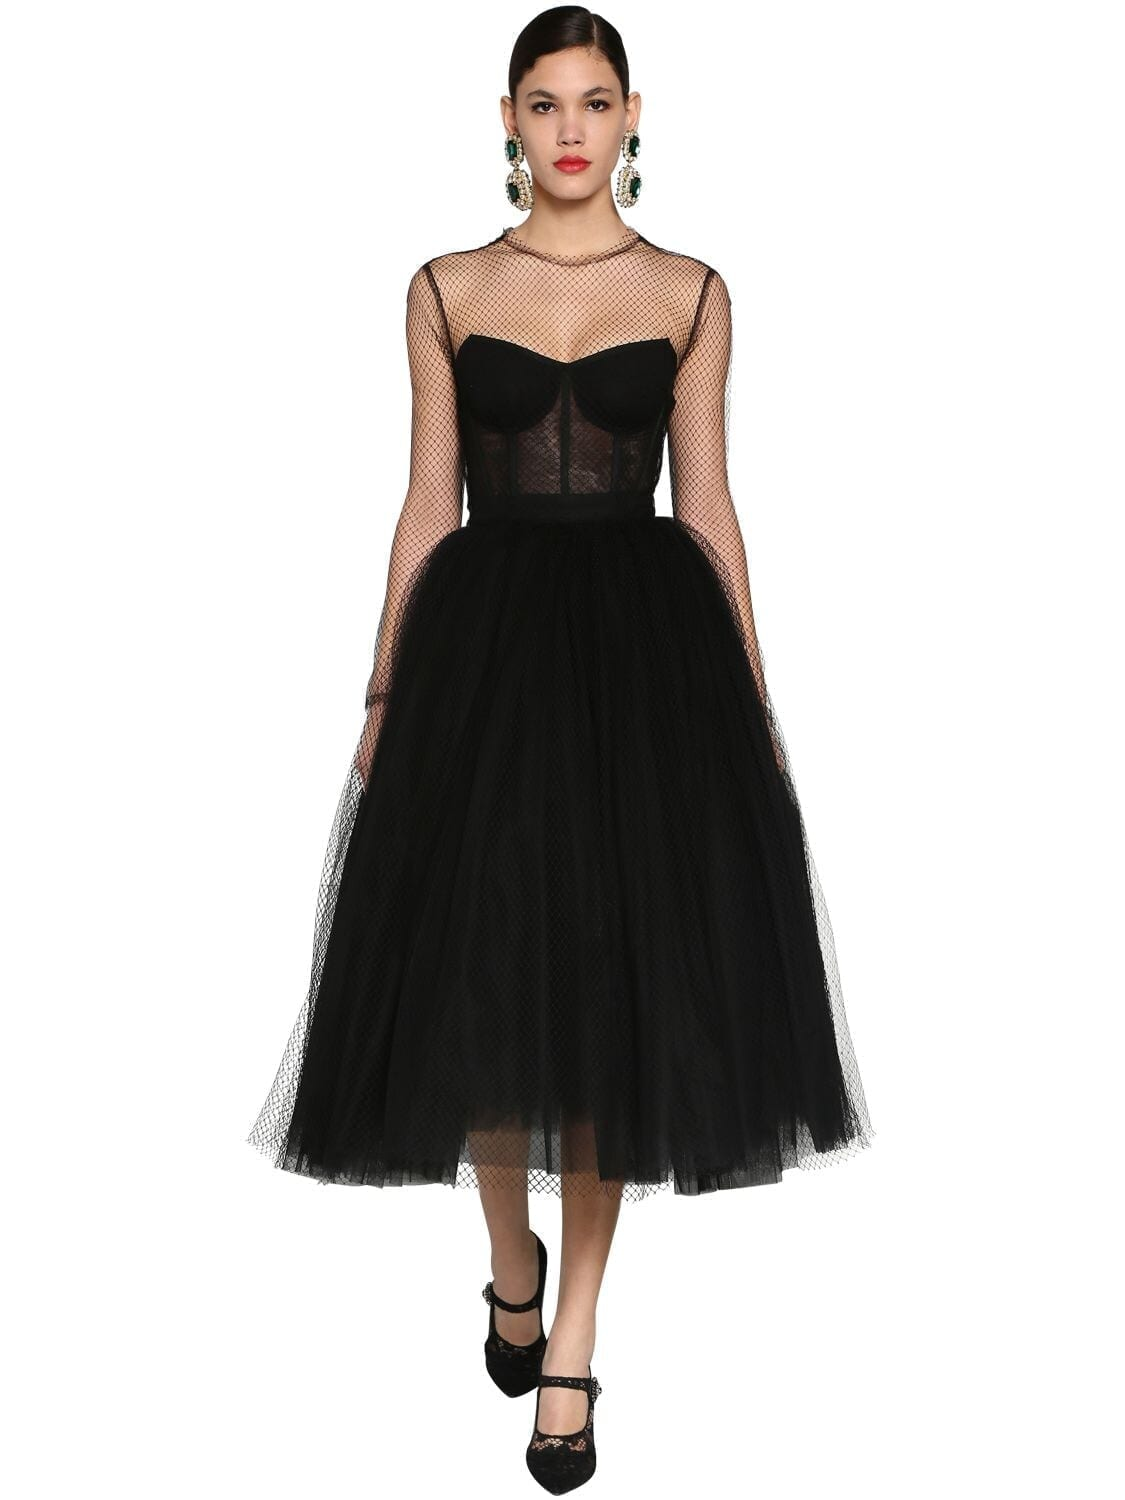 DOLCE & GABBANA Corset Puff Skirt Tulle & Net Midi Dress